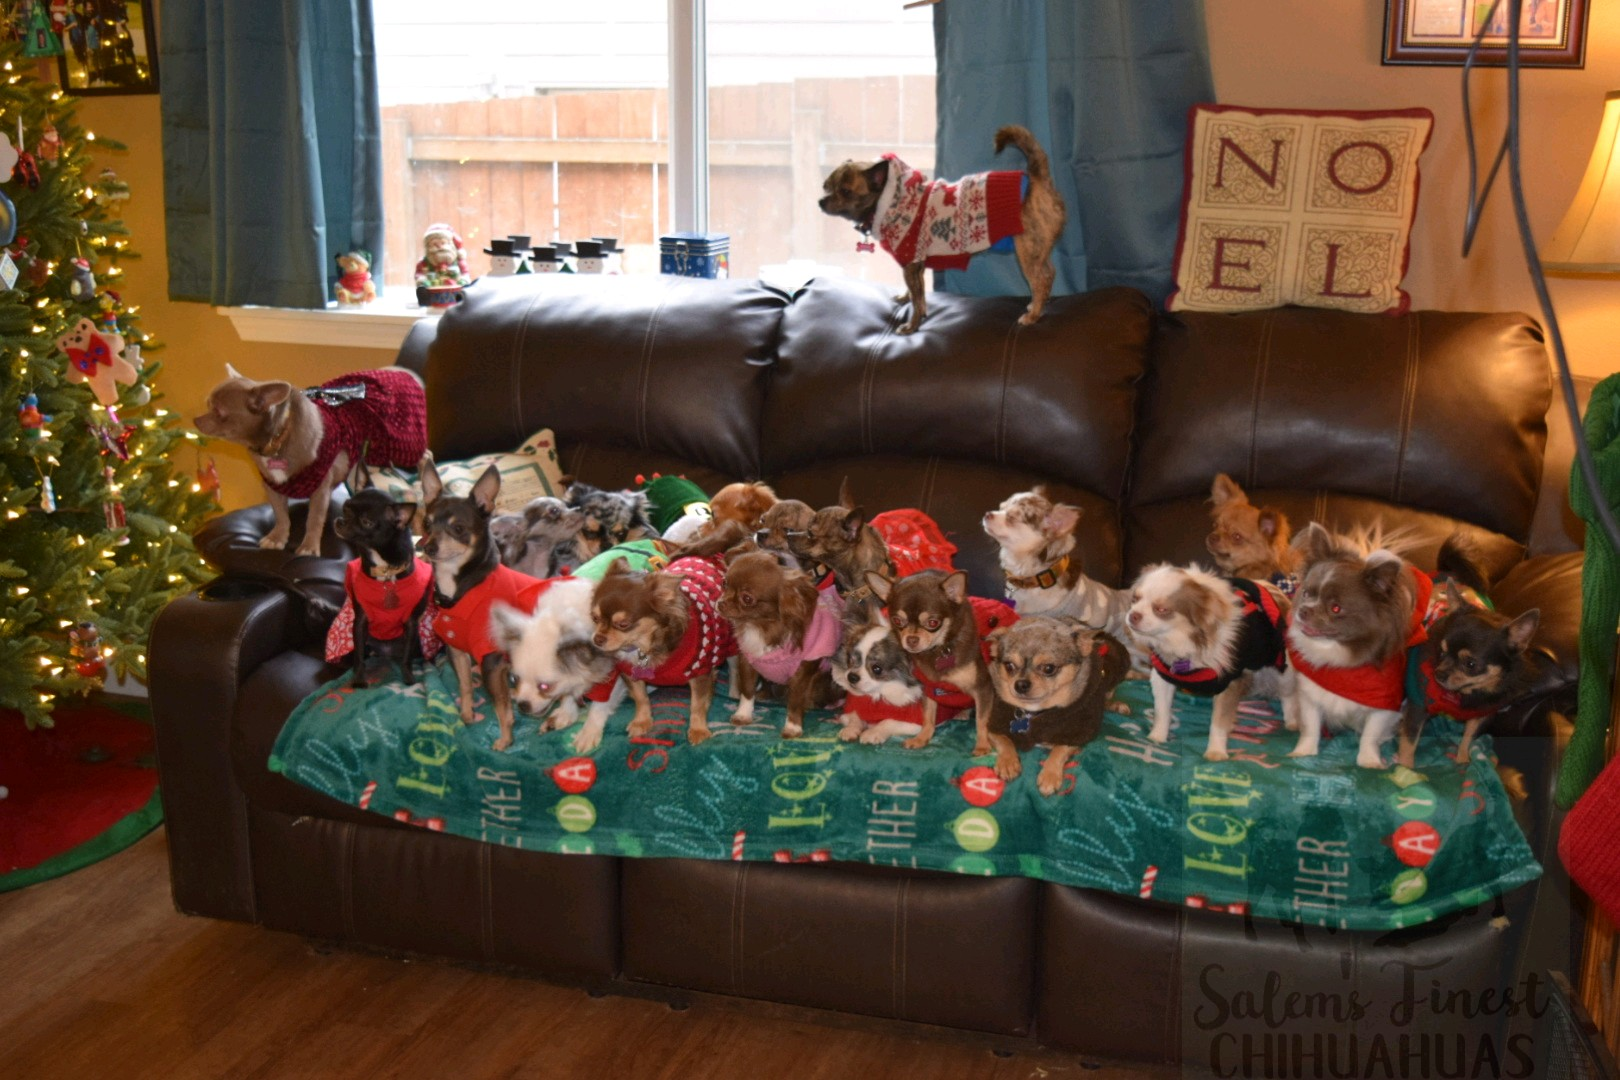 Woman dresses Chihuahuas up in Christmas outfits